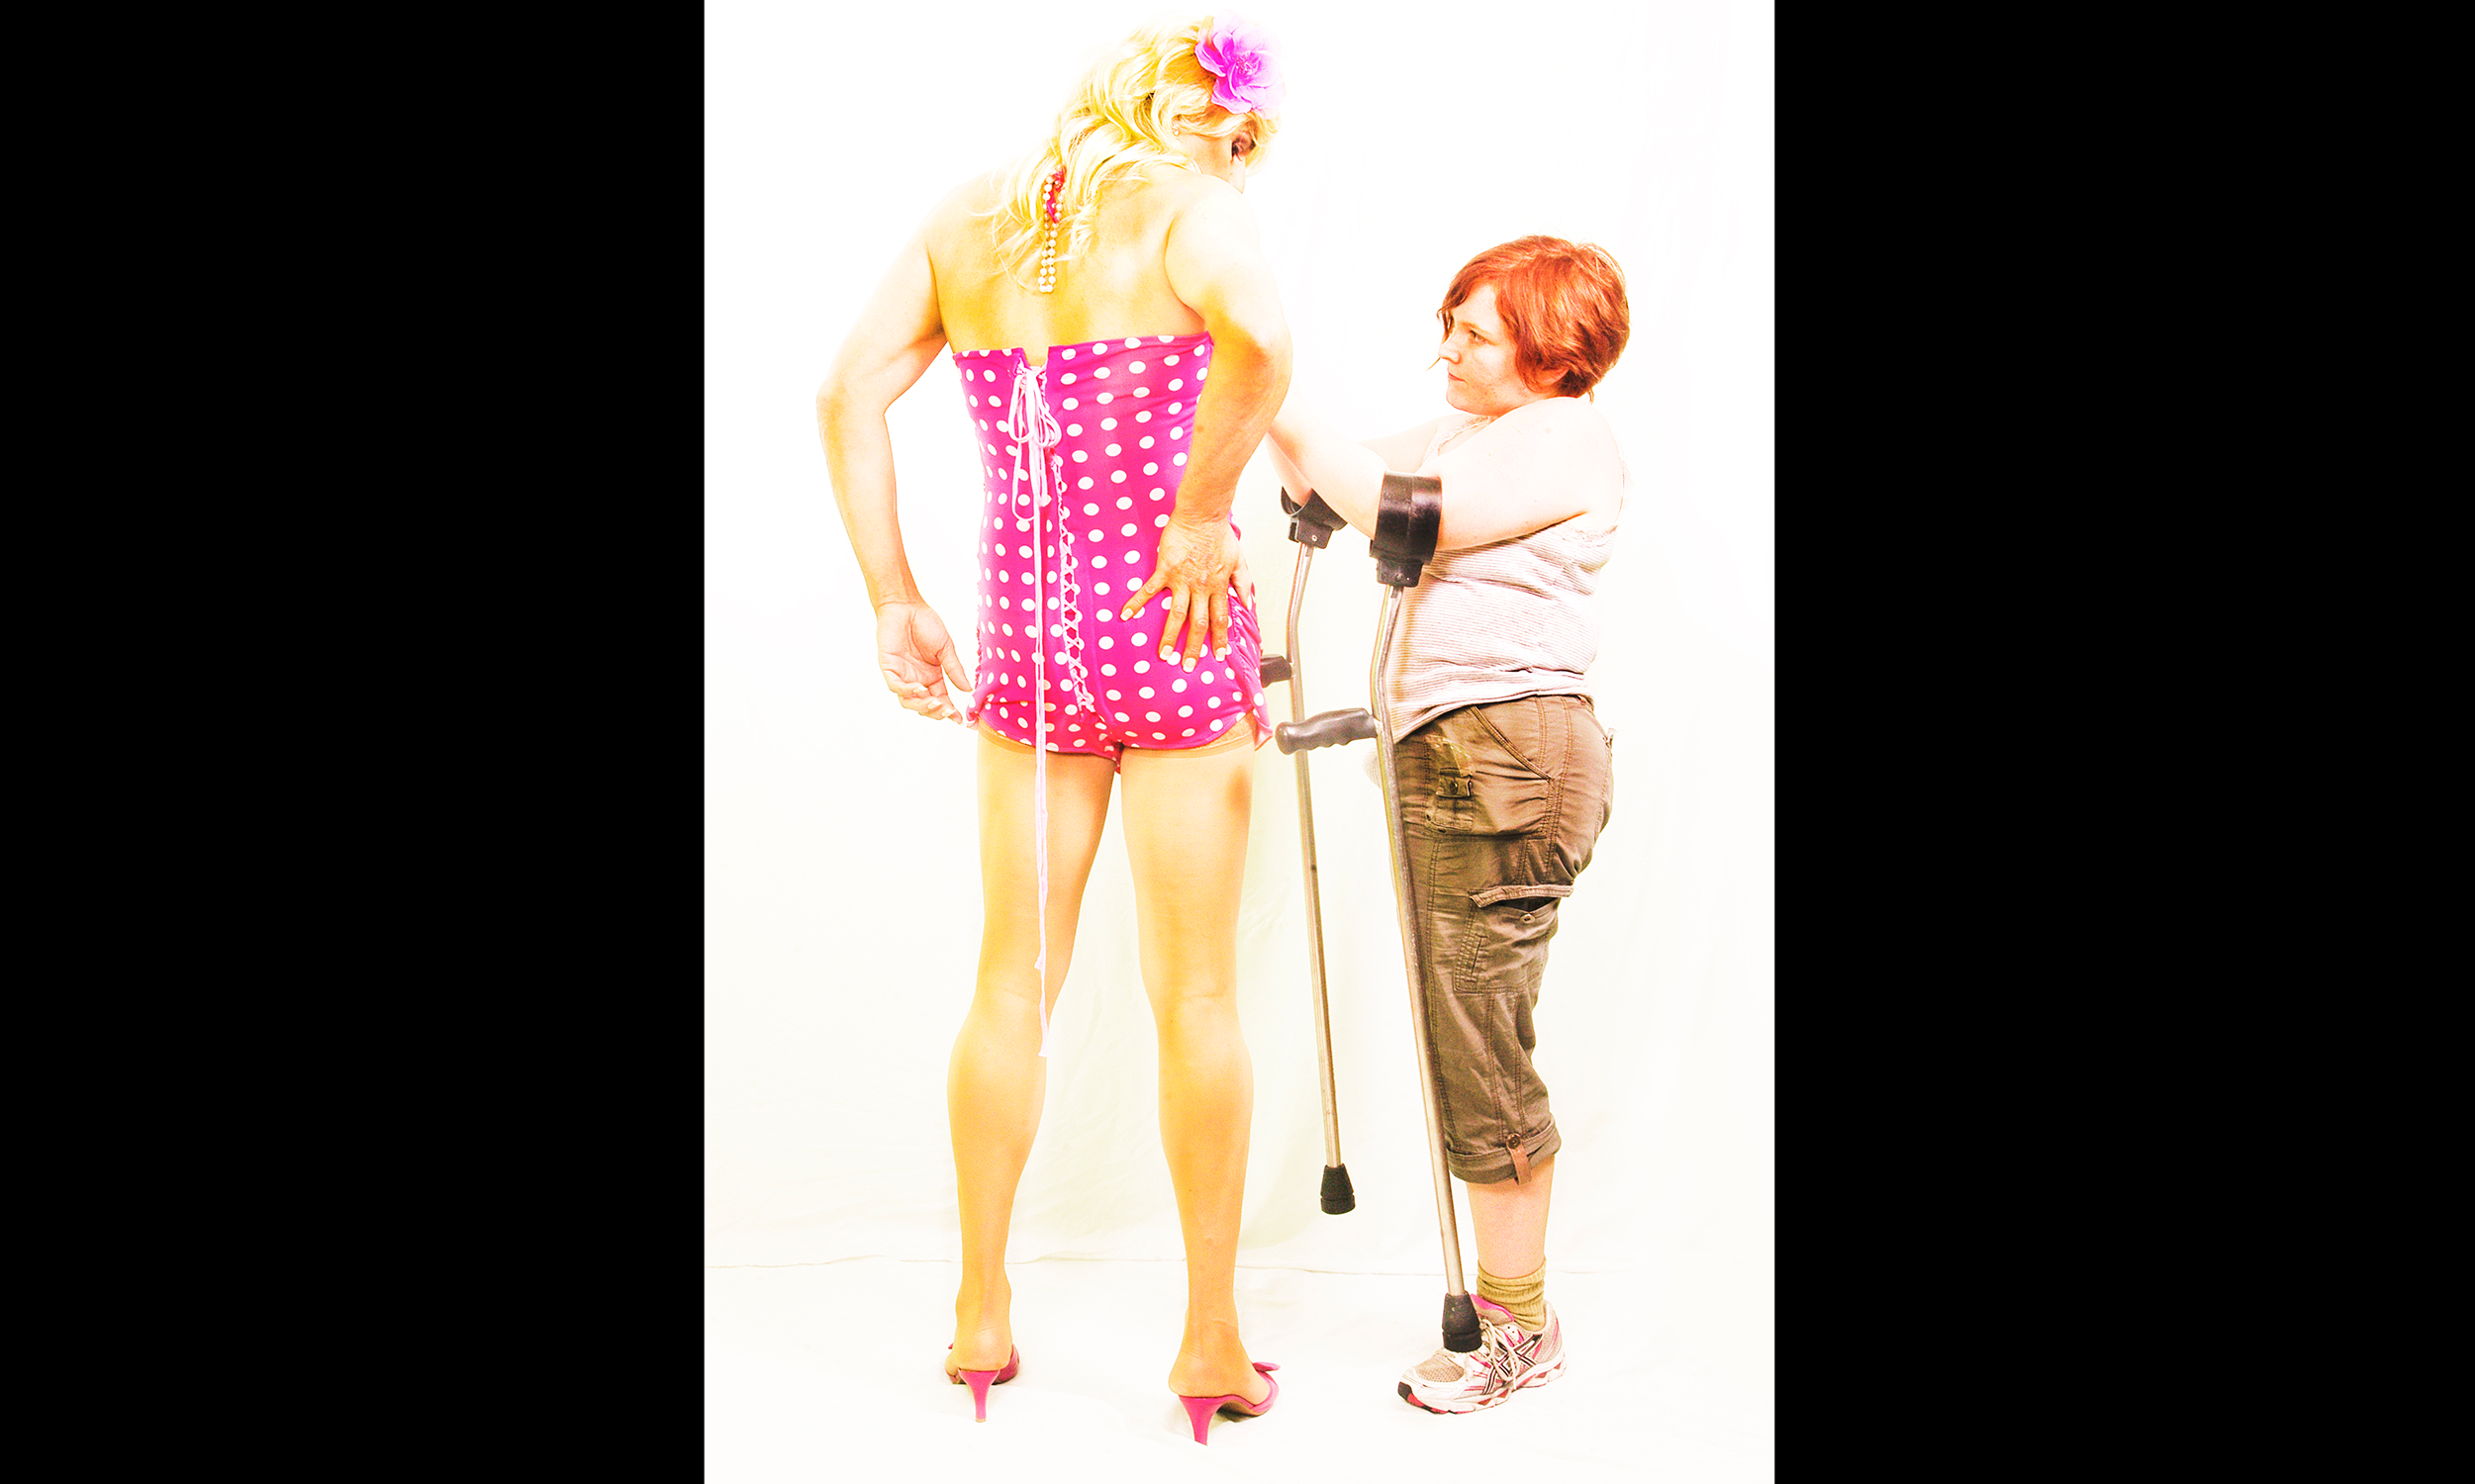 T-girl in pink polkadot top swimsuit with blond wig and kitten pumps, Mallory standing with arms up and crutches hanging, putting finishing touches on